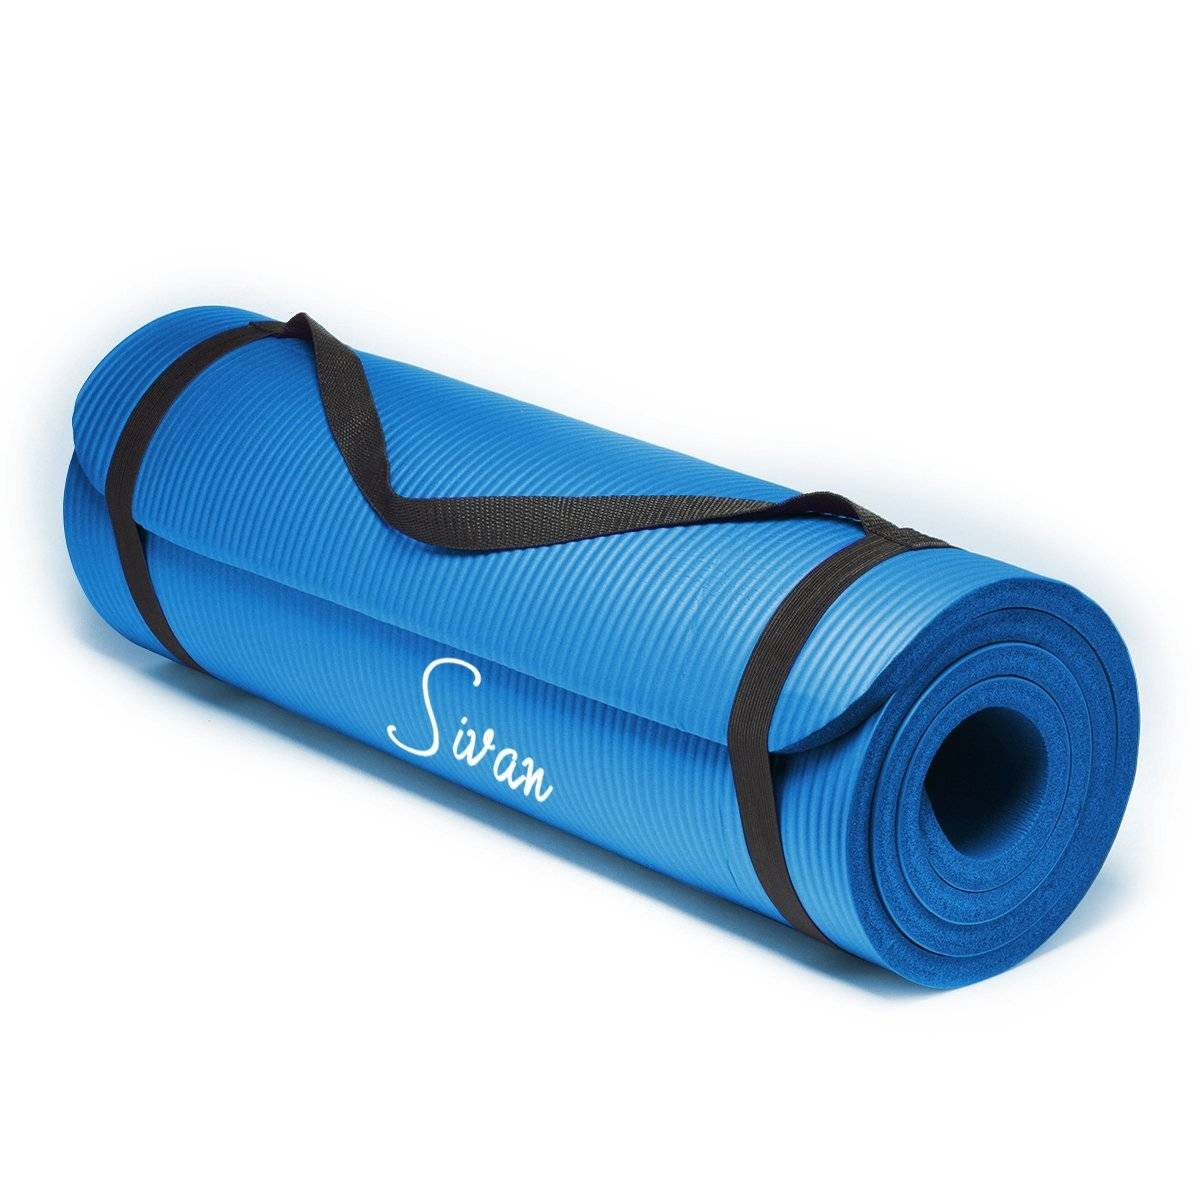 Extra Thick 71-inch Long Sivan Health NBR Comfort Foam Best Yoga Mats